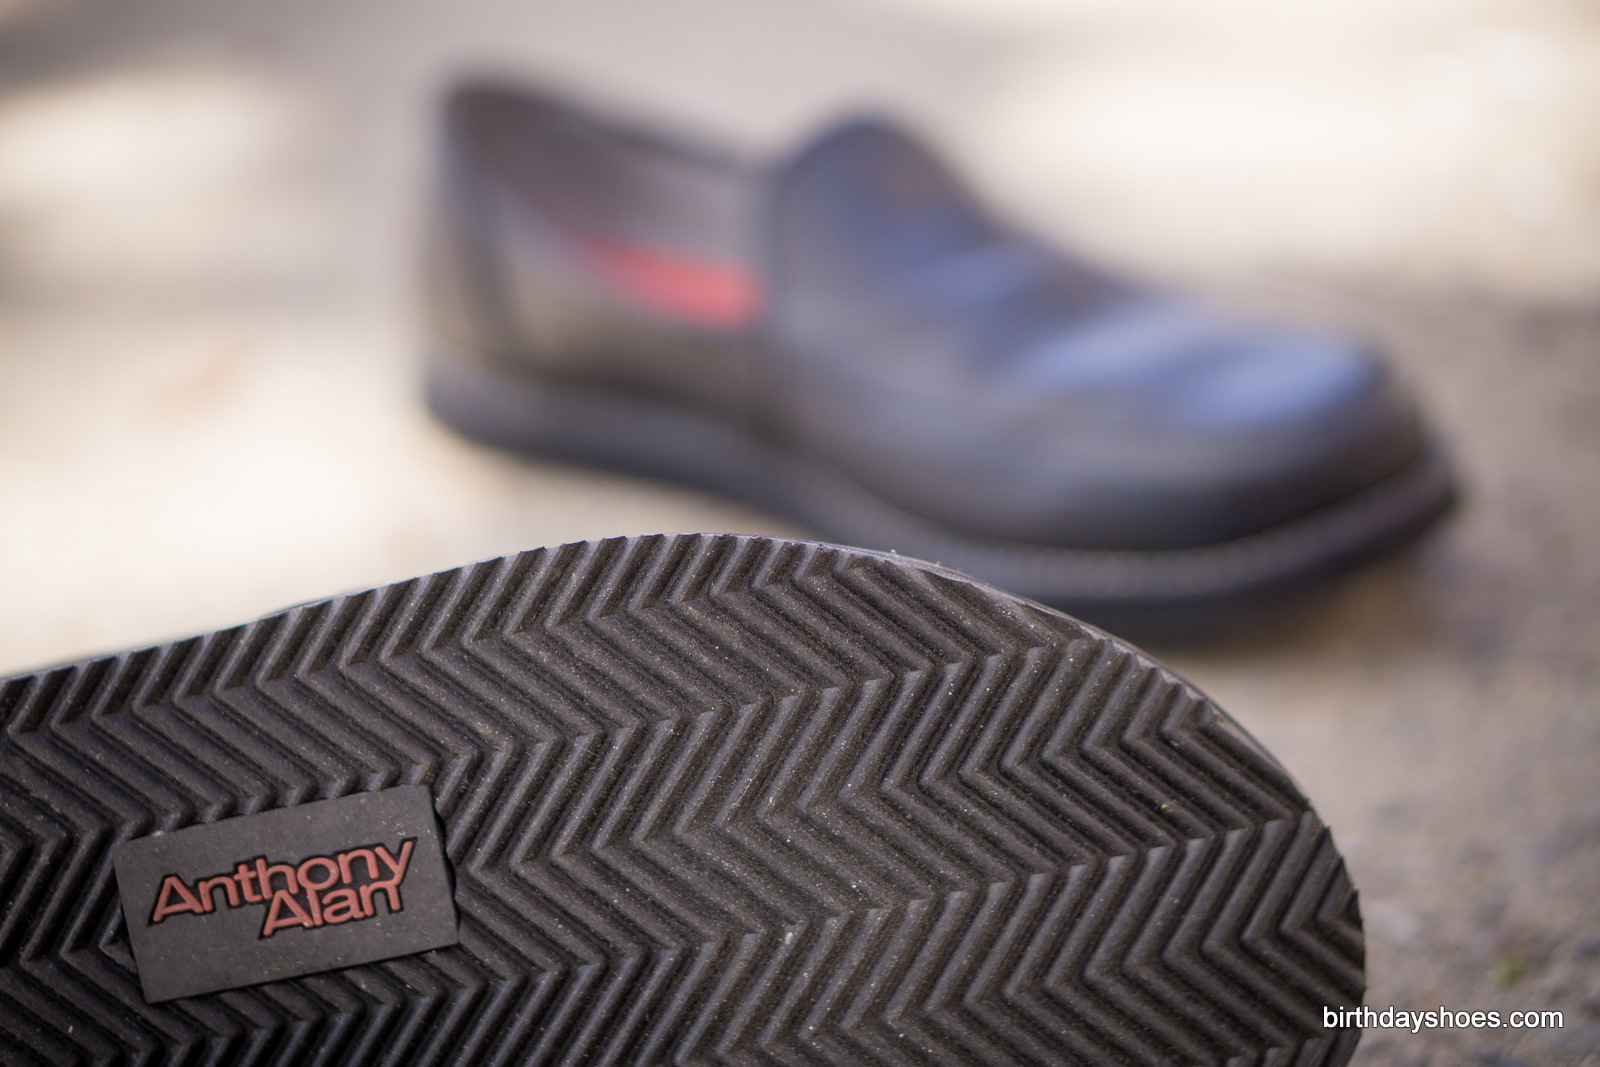 The 15mm sole from Anthony Alan is zero drop, has excellent traction, and provides the platform for a wide toebox